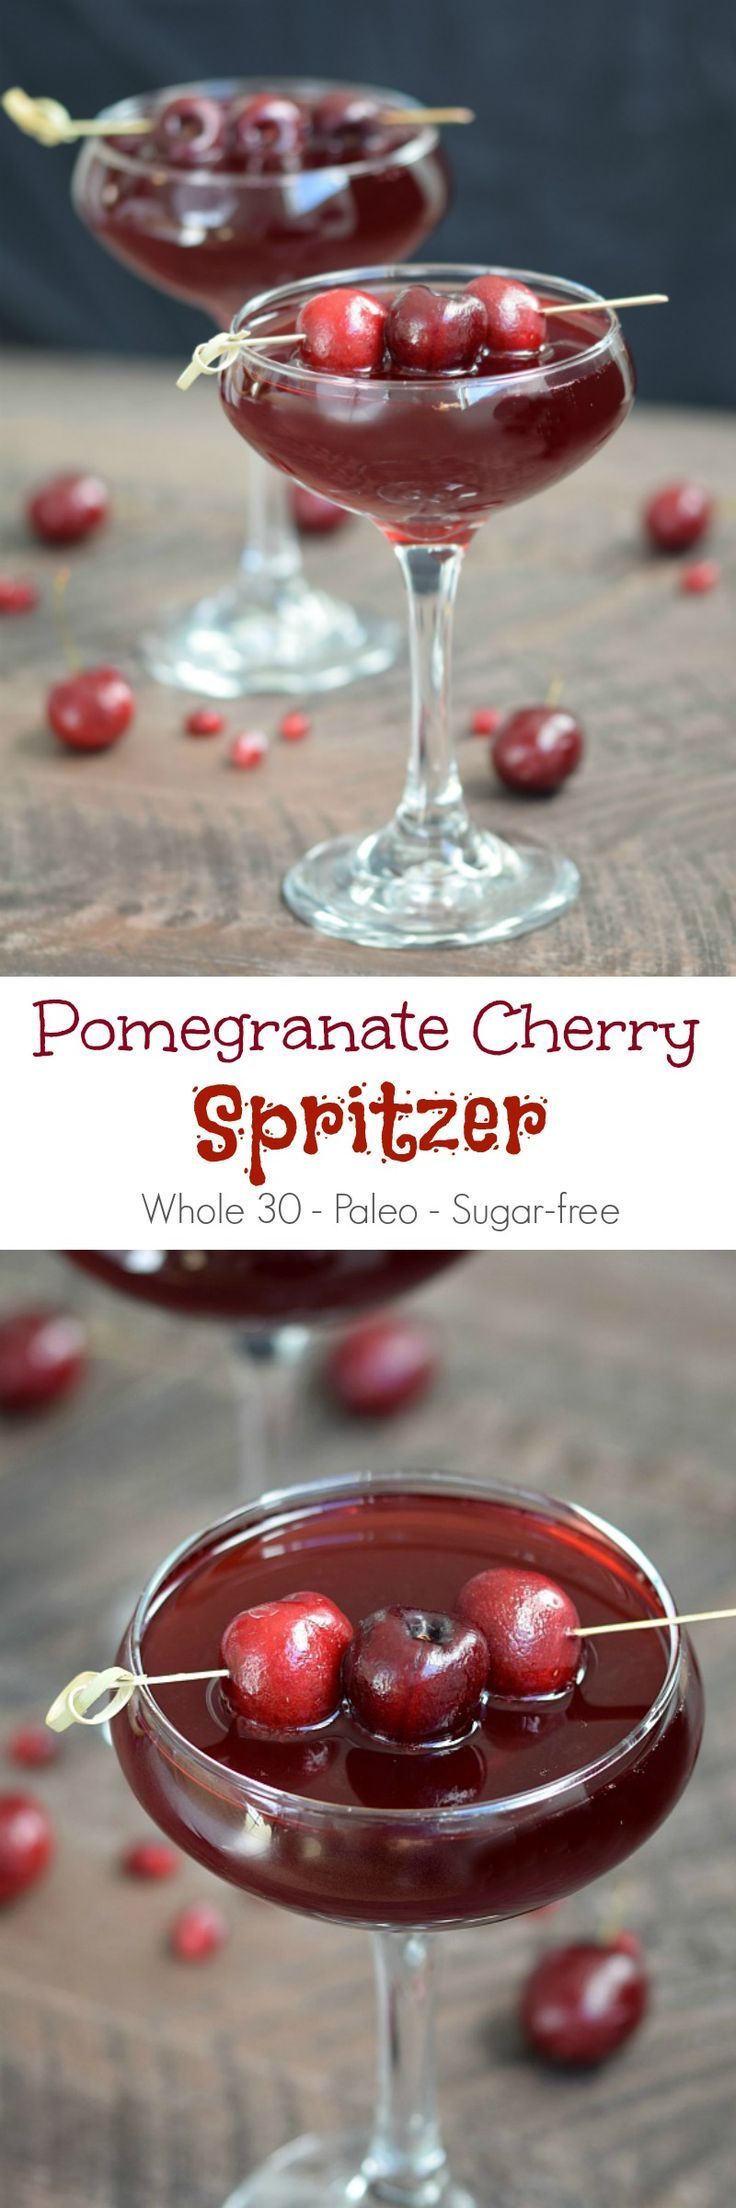 This Pomegranate Cherry Spritzer is the perfect way to celebrate with friends without feeling guilty or blowing your diet | cookingwithcurls.com